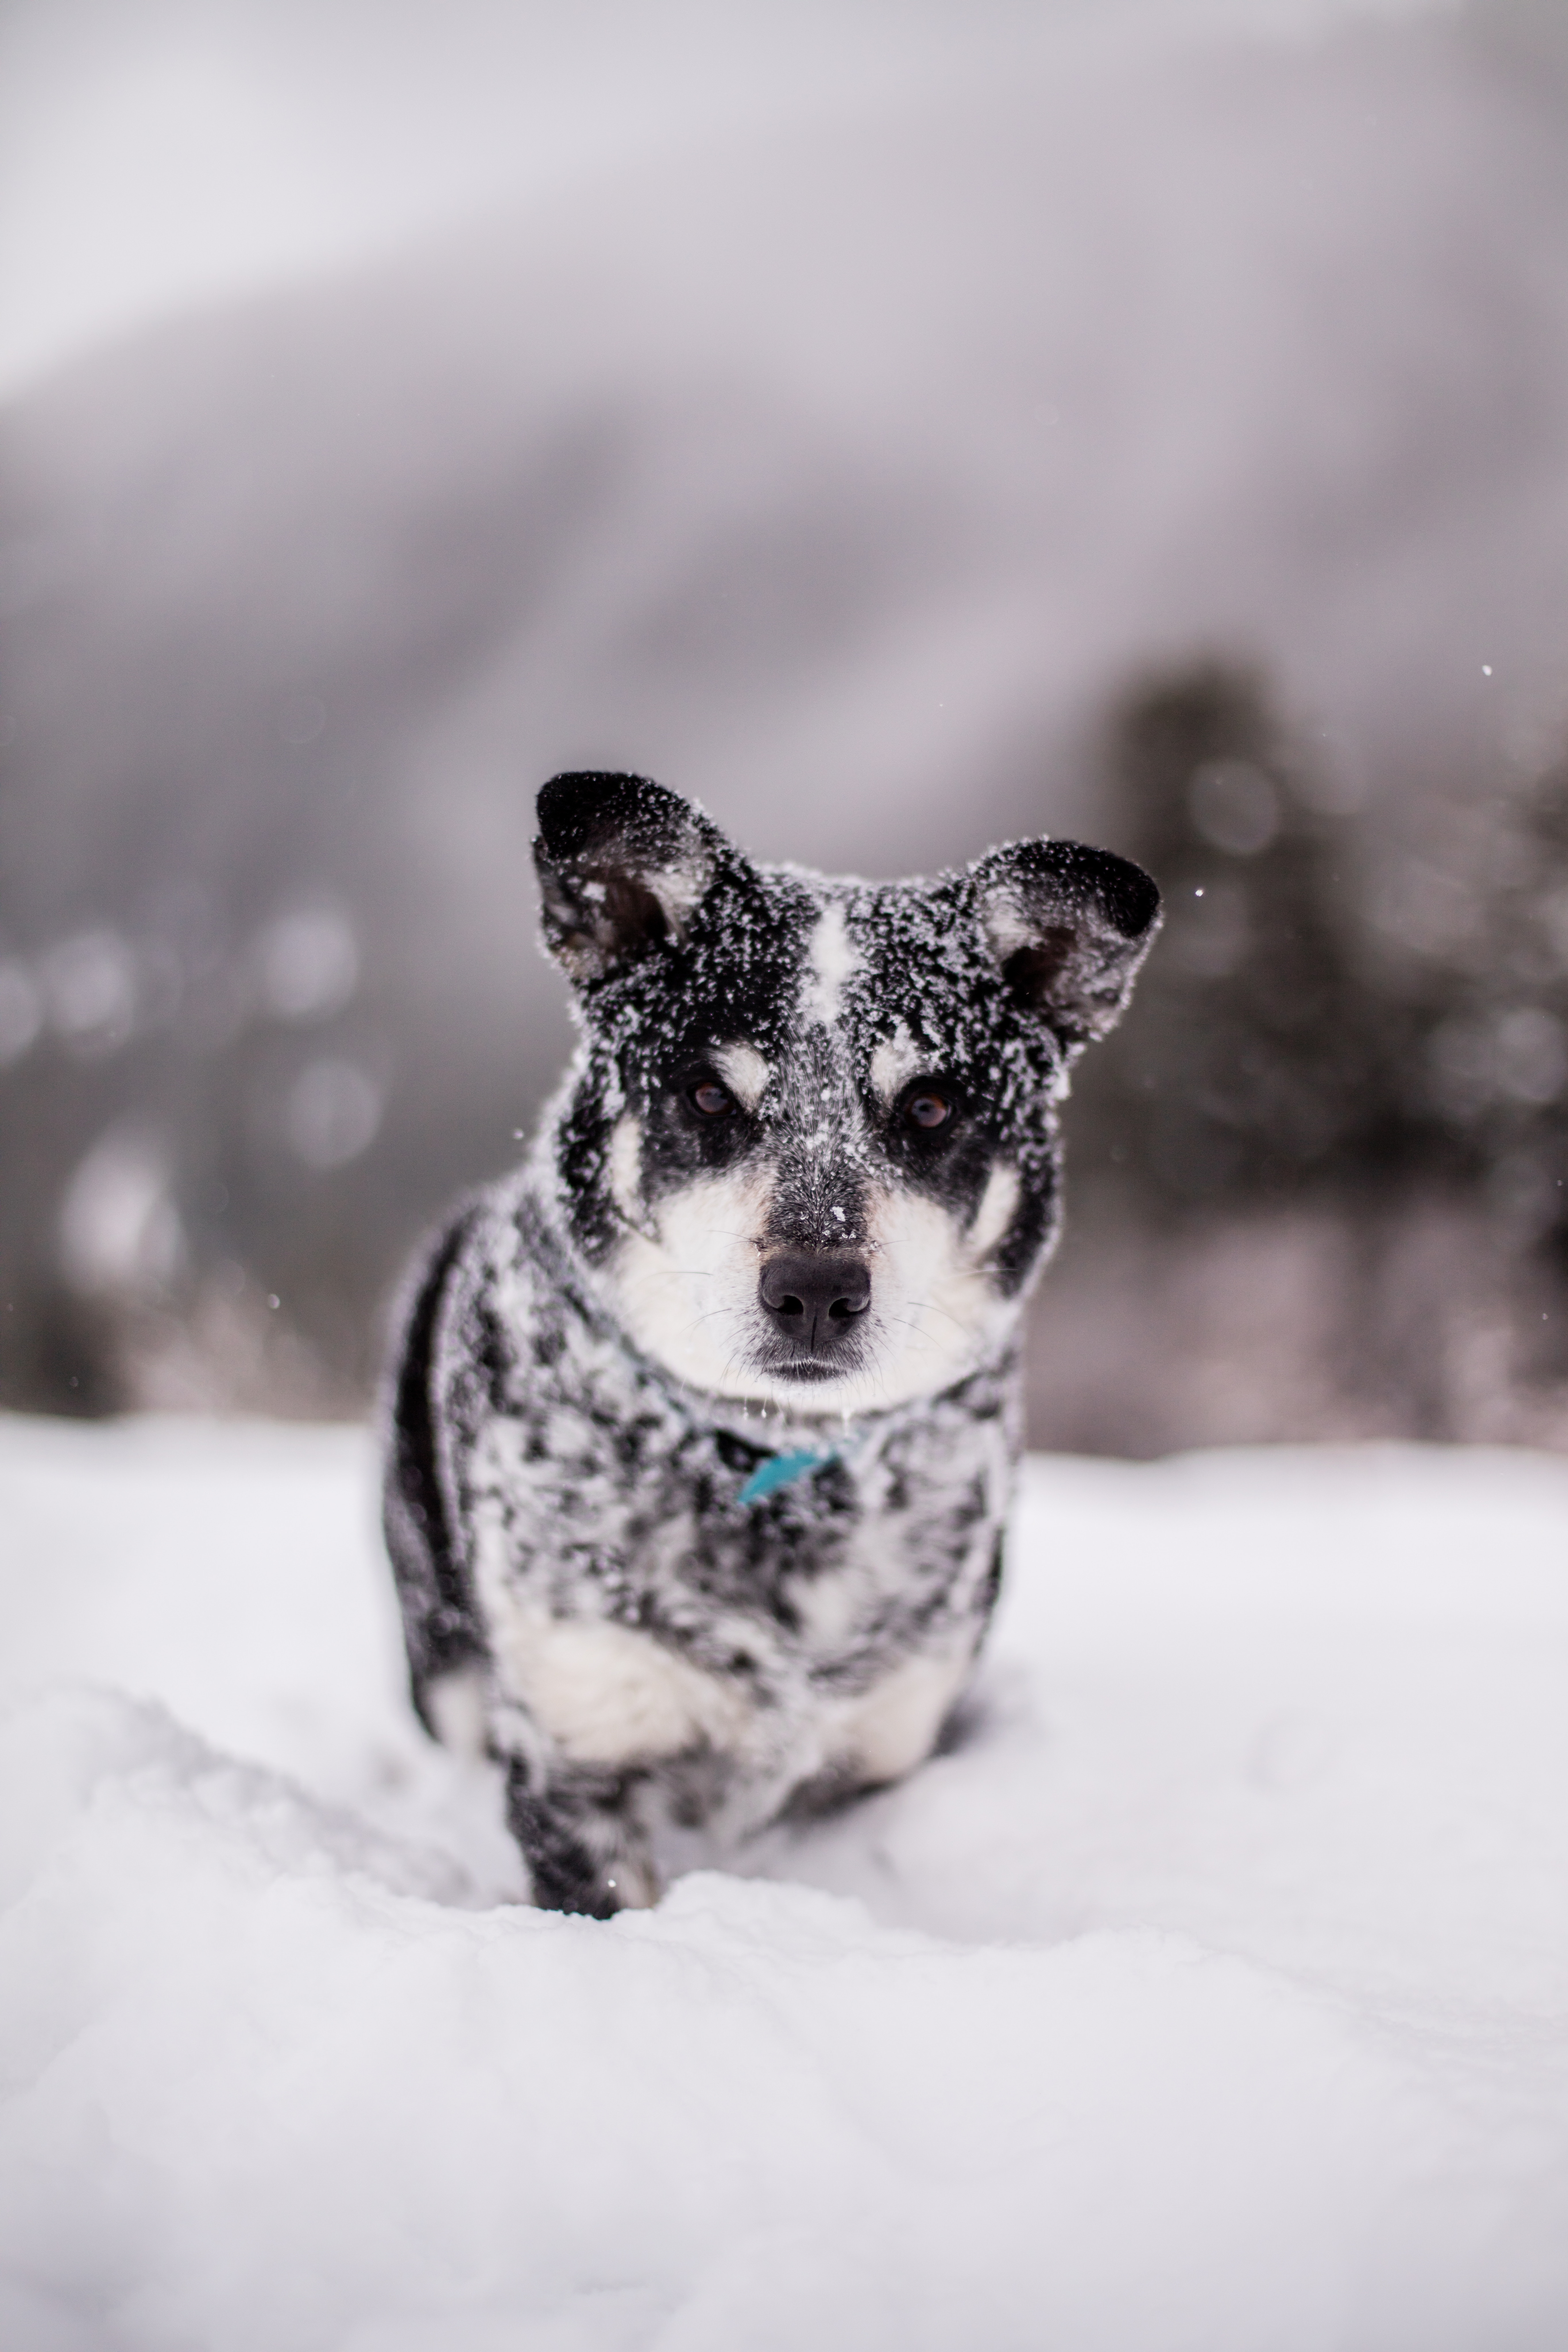 52565 download wallpaper Animals, Dog, Snow, Wet, Muzzle, Funny, Snowdrift screensavers and pictures for free